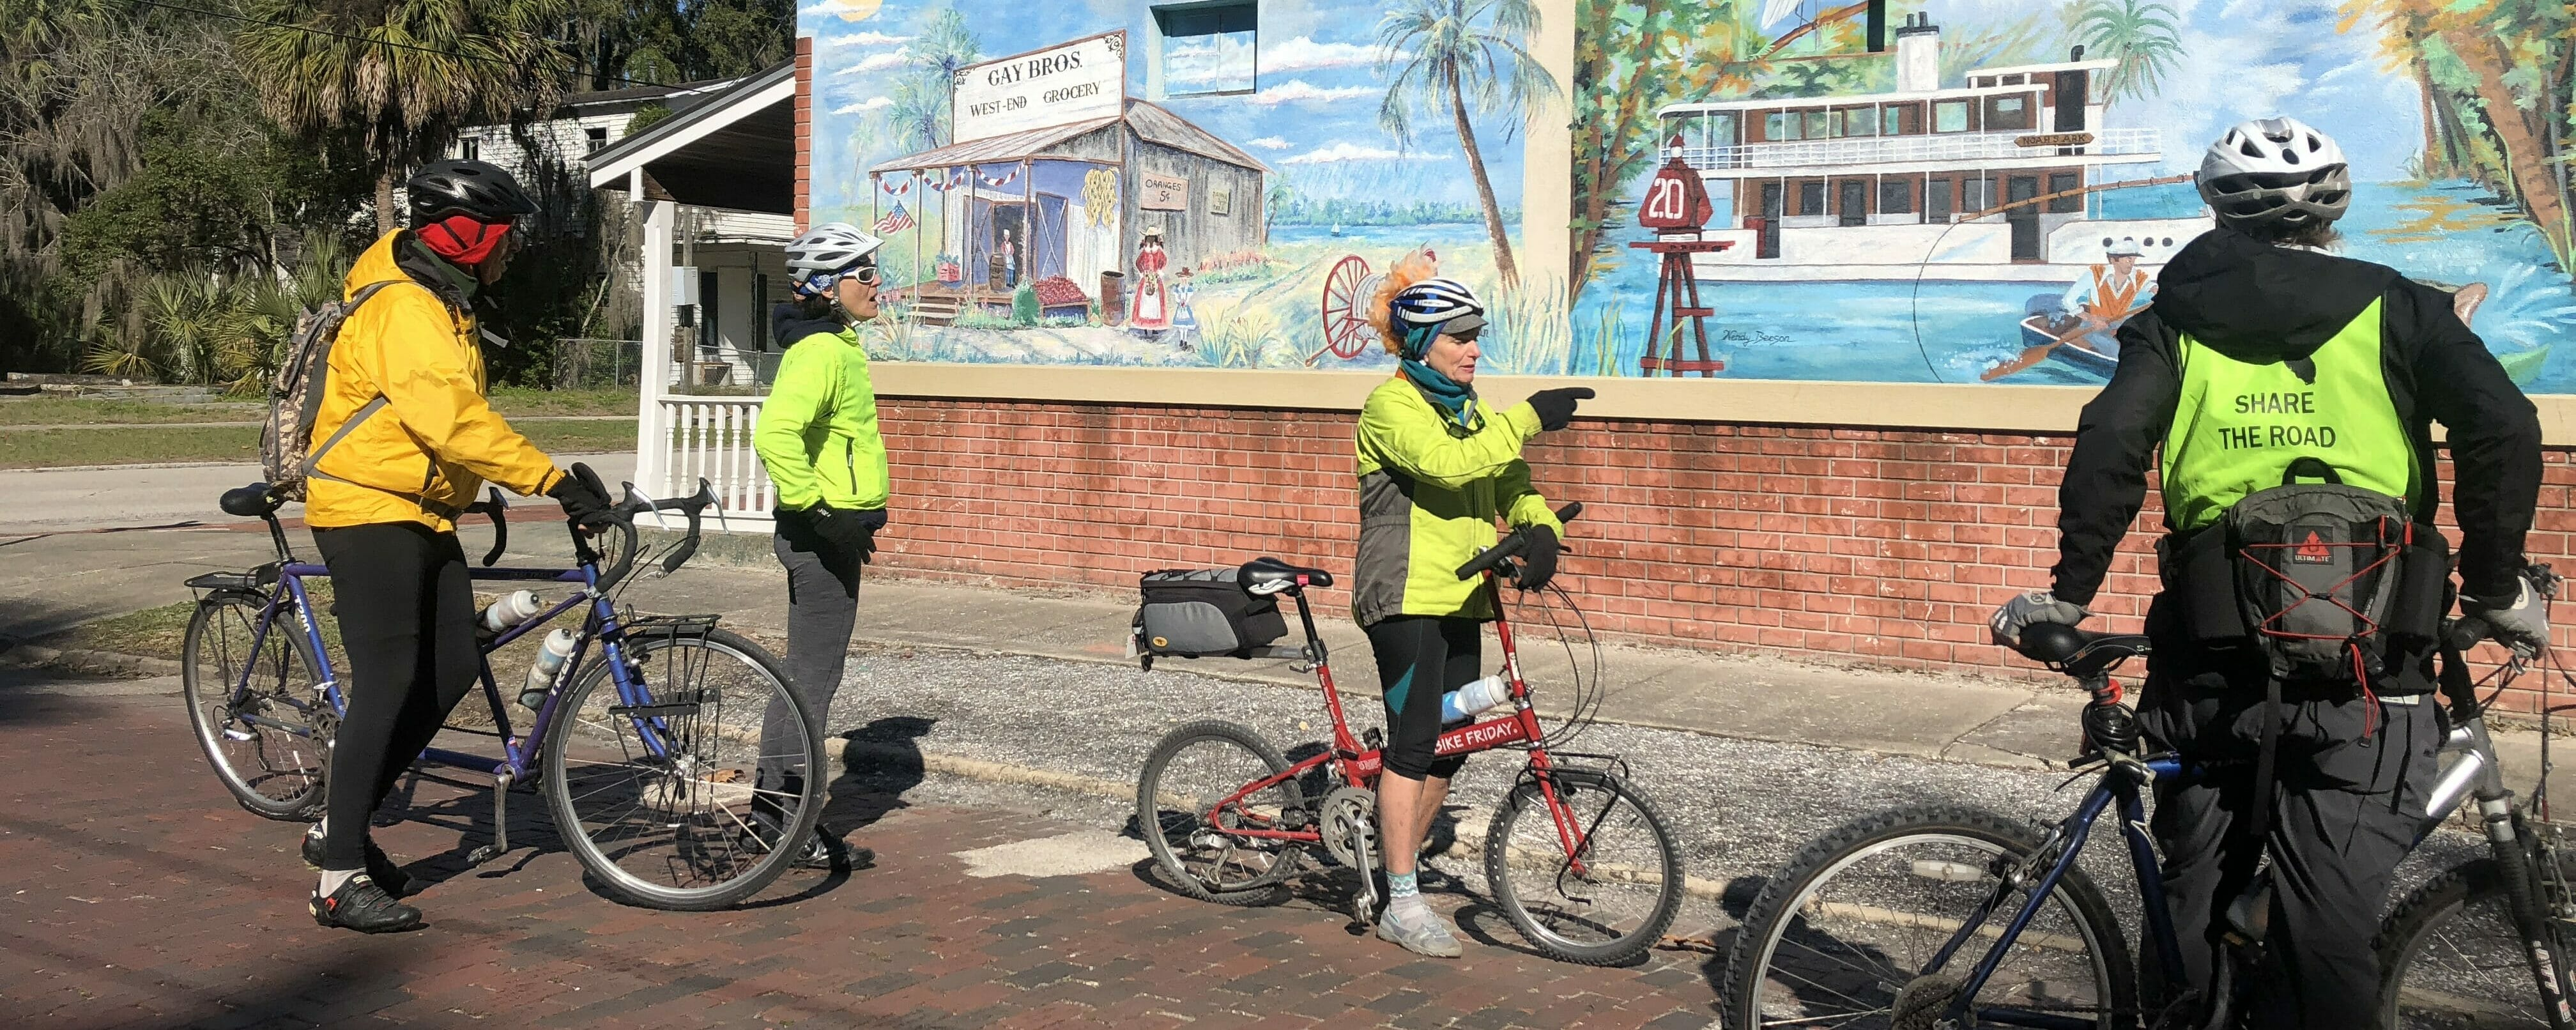 Biking on the Bartram Adventure Tour